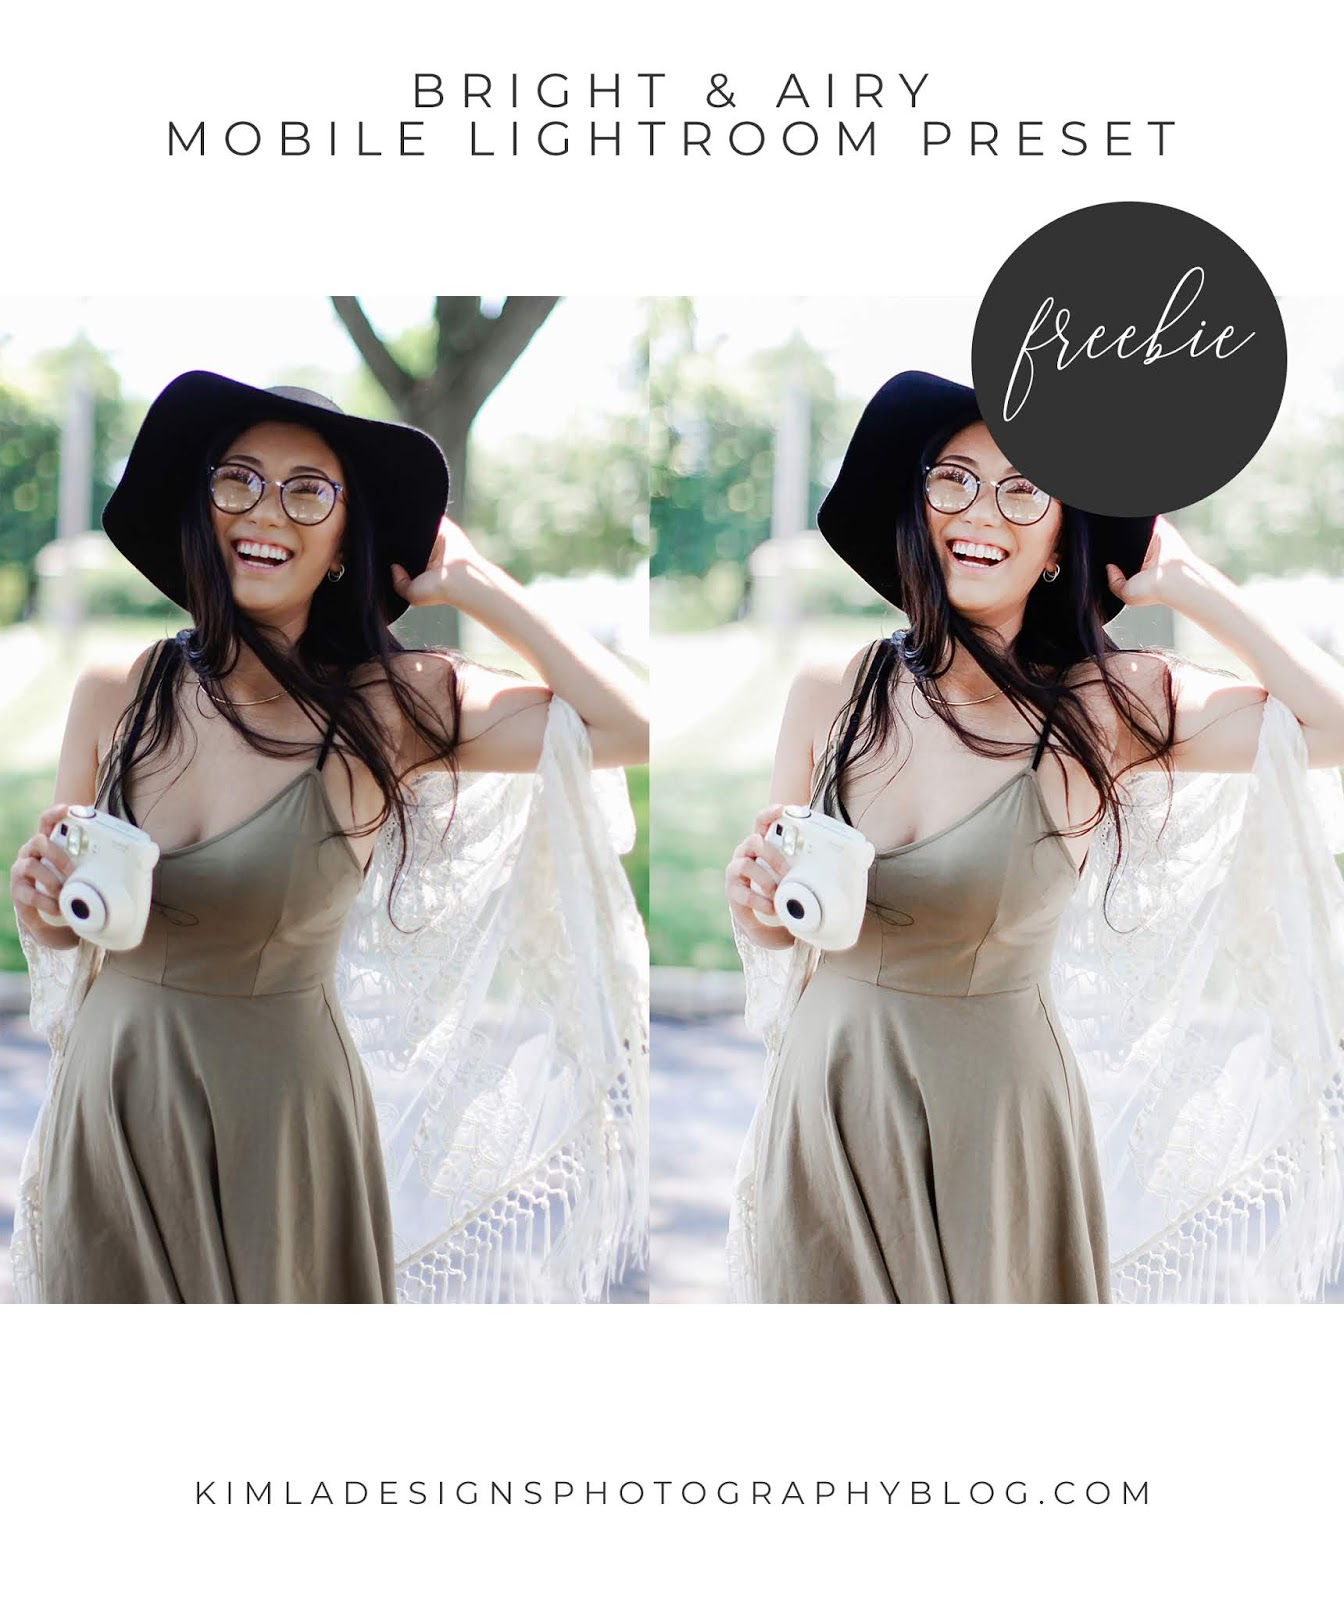 Free Bright & Airy Lightroom Mobile Preset for Photographers